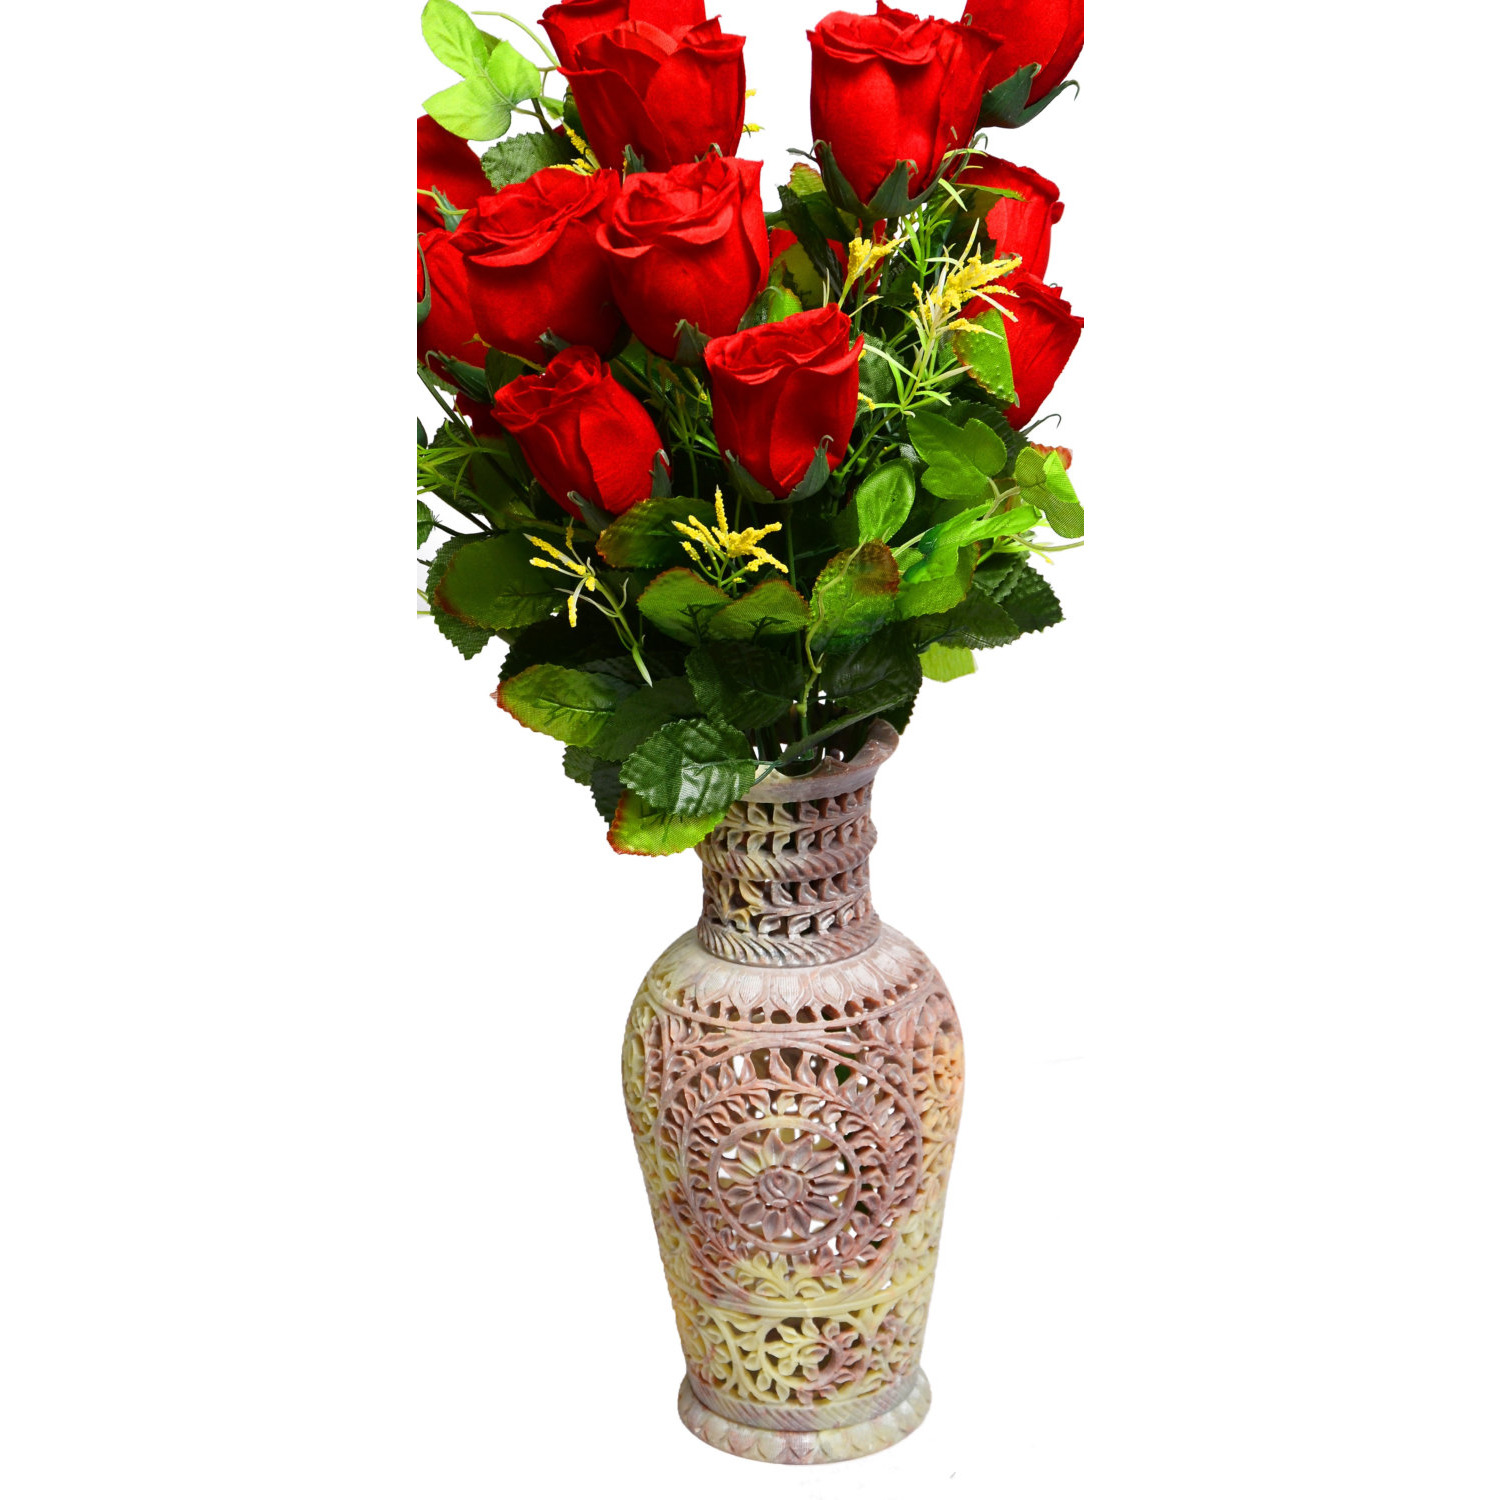 Buy Online Marble Flower Vase from USA - Zifiti.com - Page on usa wood decor, usa centerpieces, usa ceramics, usa mugs, usa puzzles, usa planter, usa stoneware marks, usa marbles, usa furniture, usa pitchers, usa sculpture, usa tools, usa accents, usa animals, usa dishes, usa buckets, usa war memorials, usa tumblers, usa bookmarks, usa murals,